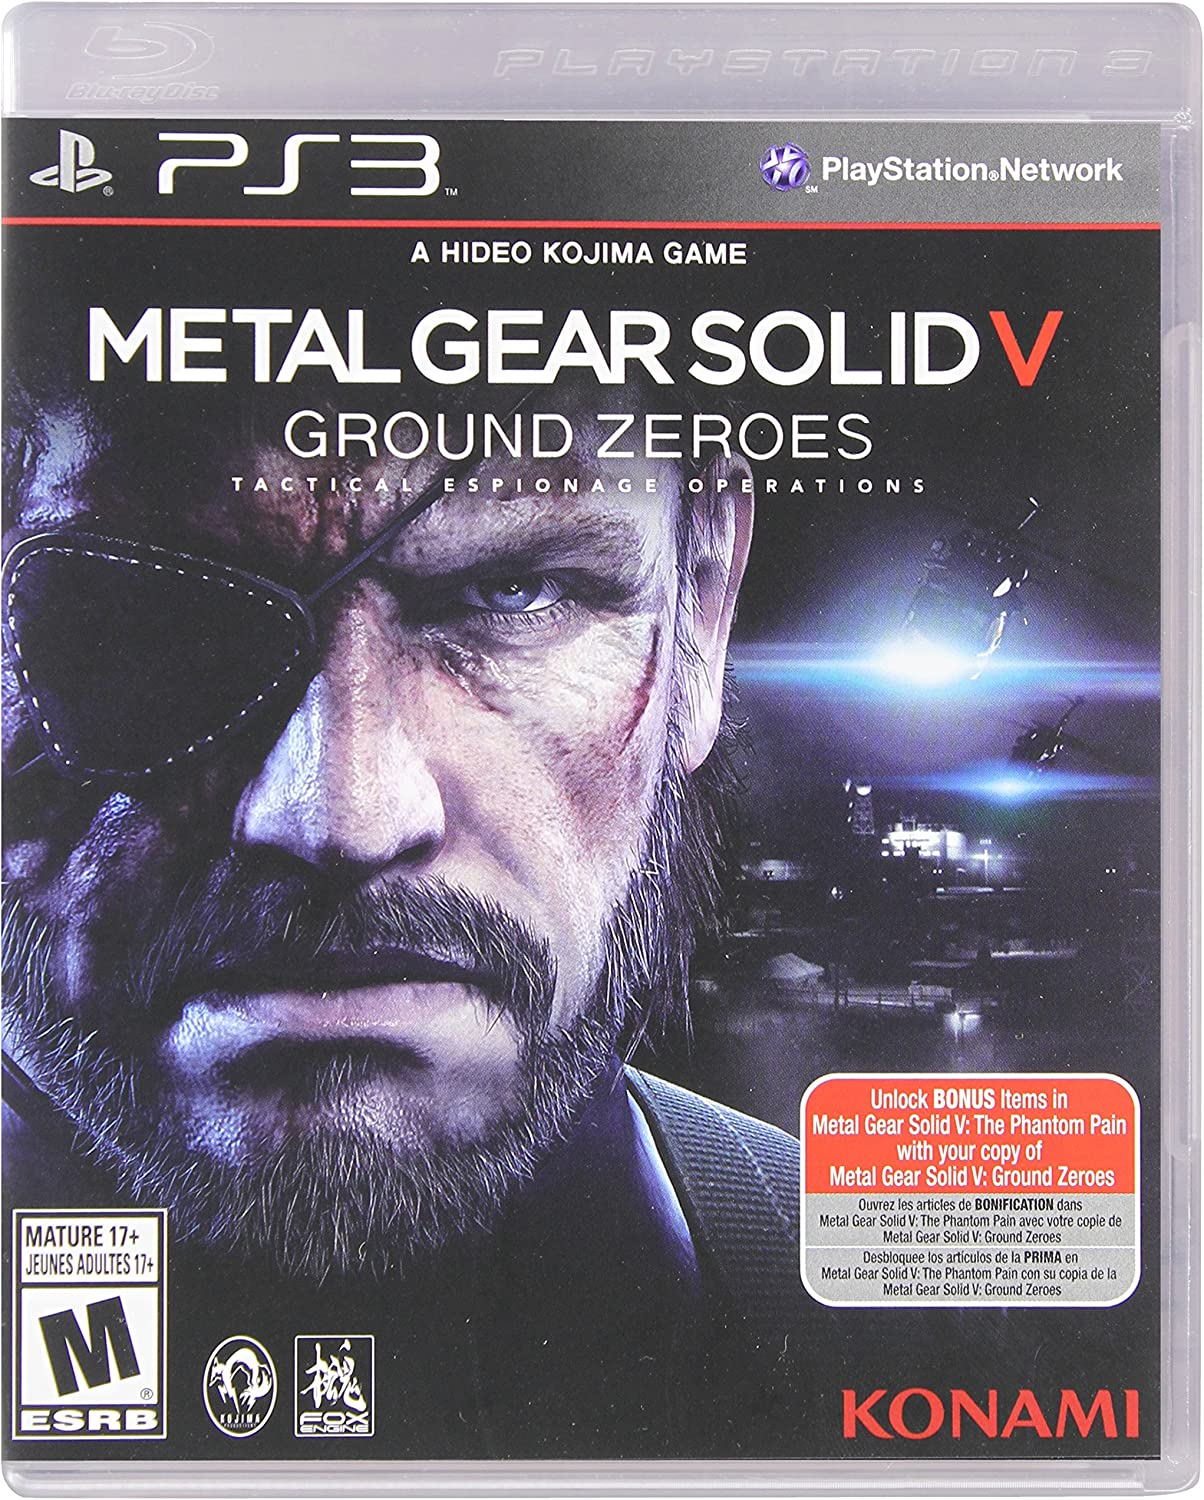 68c345966d2 Amazon.com  Metal Gear Solid V  Ground Zeroes - PlayStation 3 Standard  Edition  Konami of America  Video Games